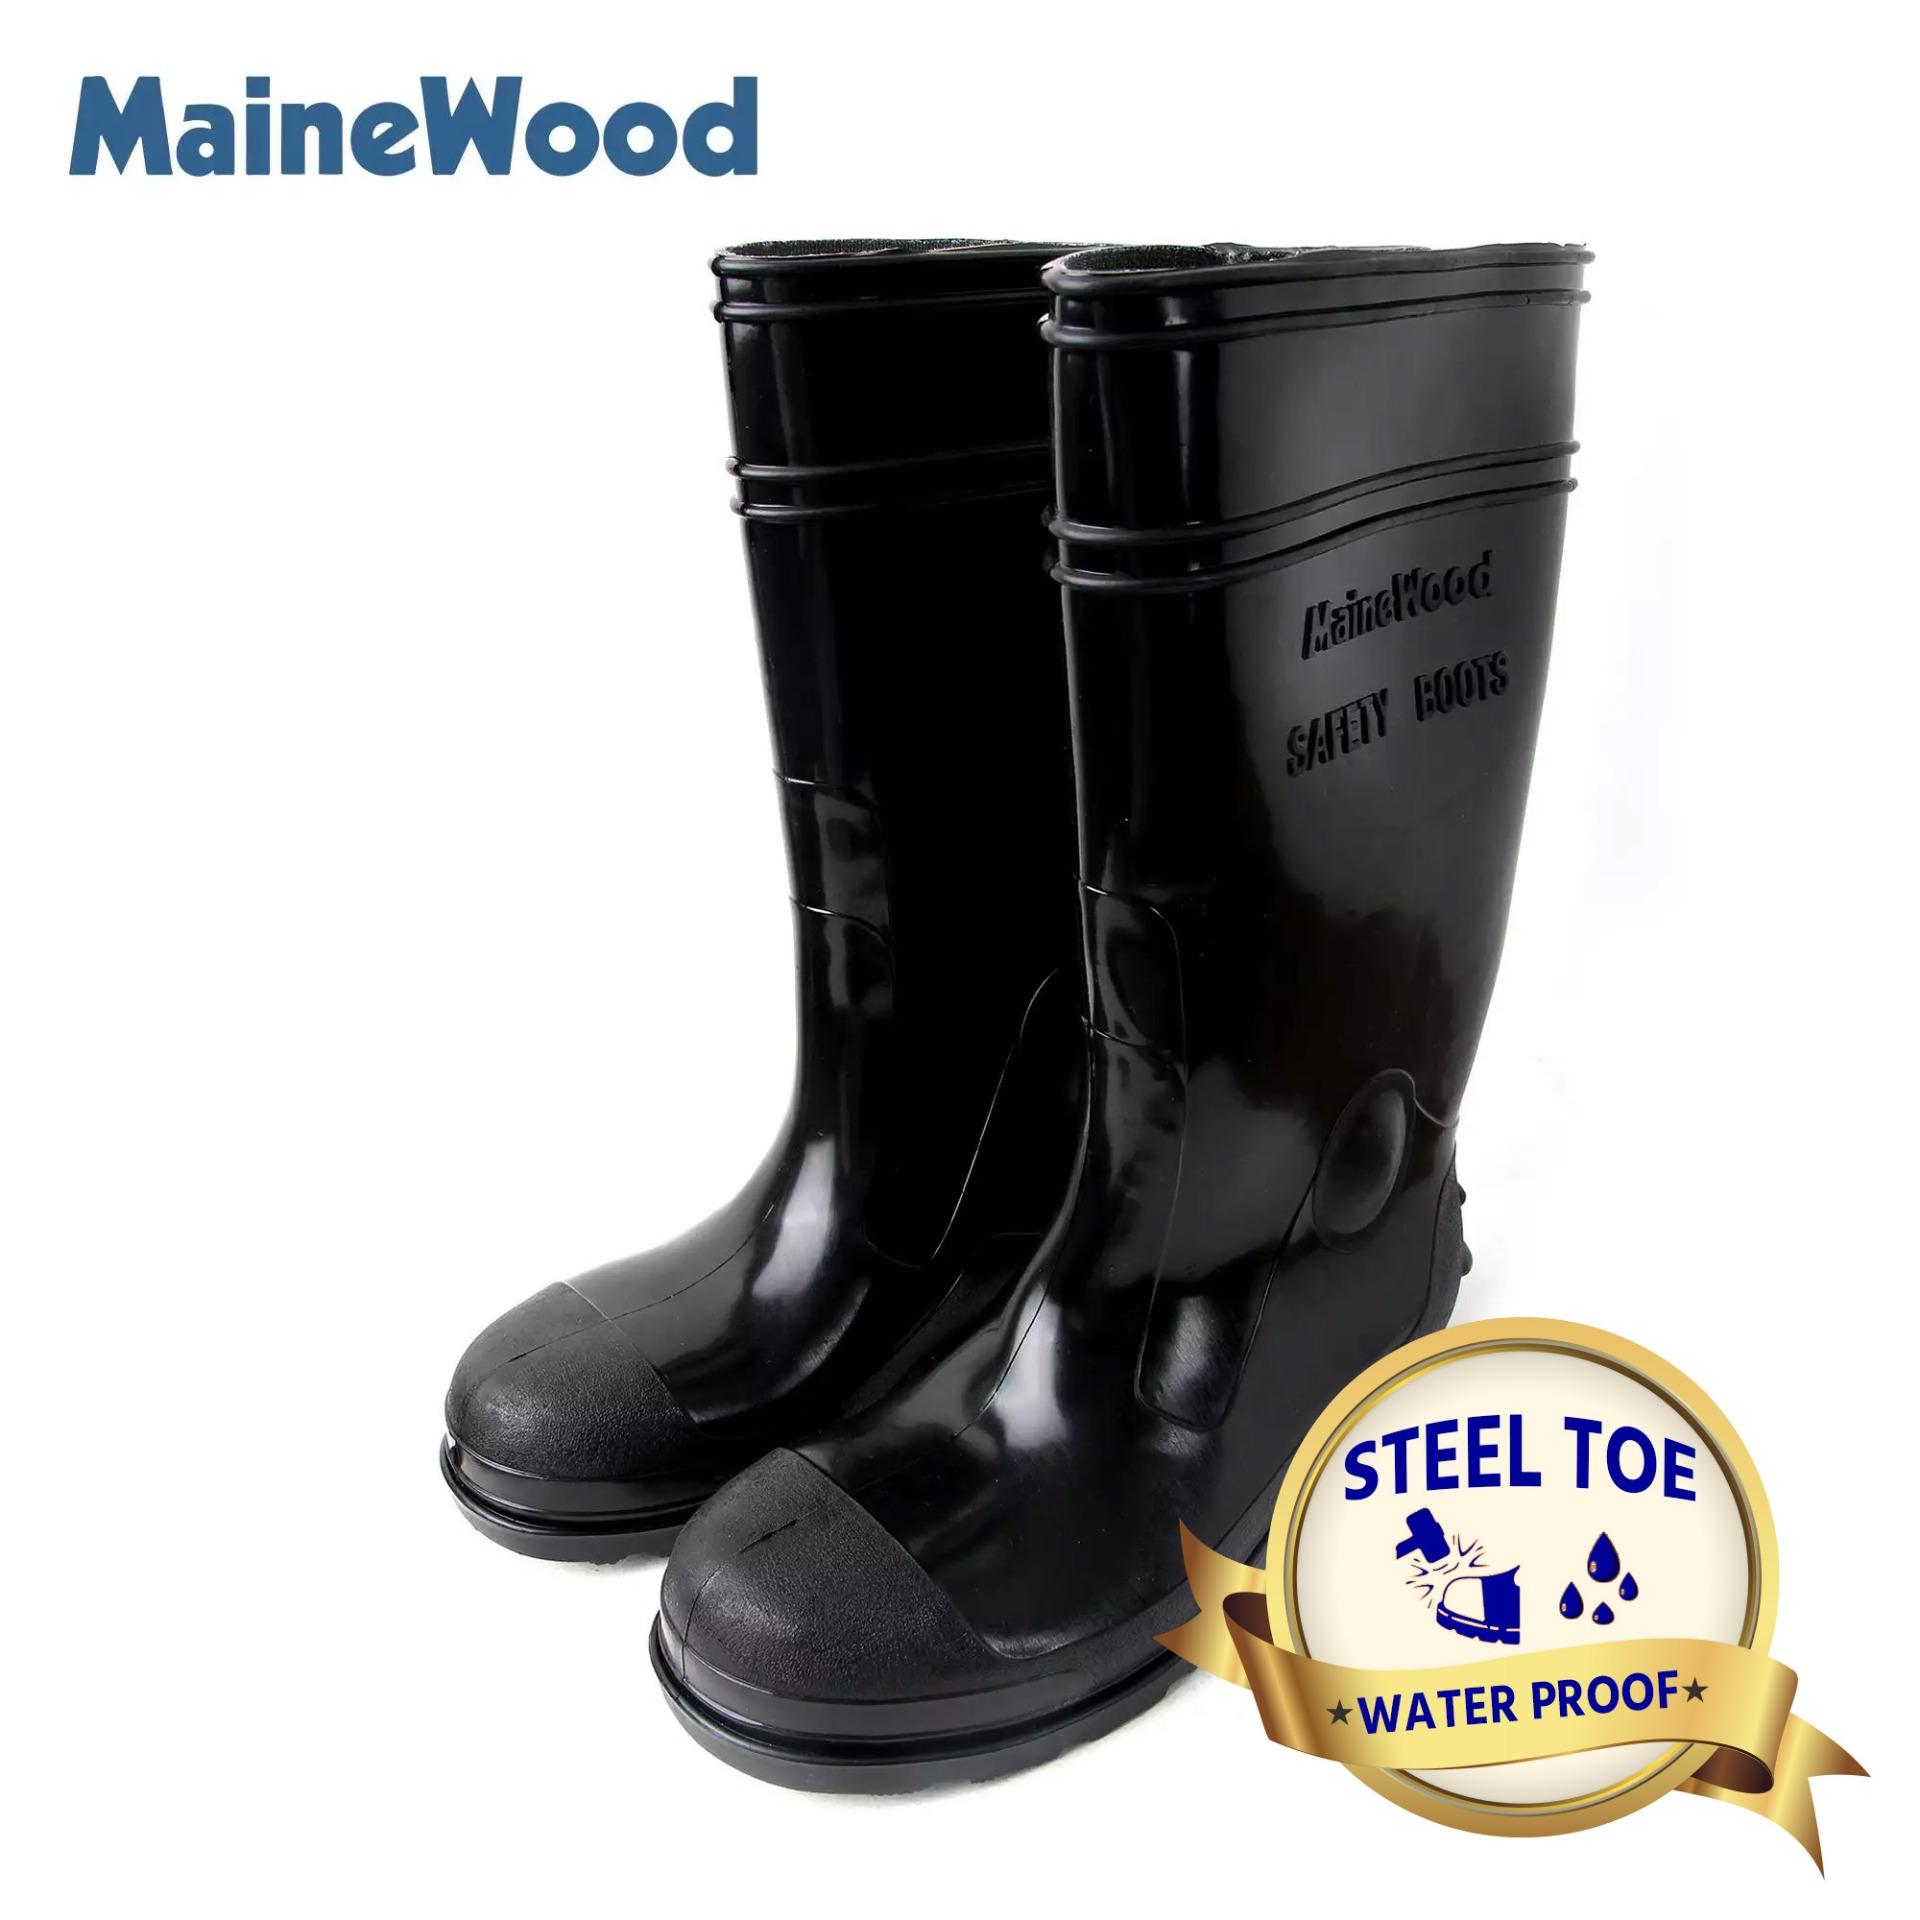 outlet store 25fbc 0961b MaineWood MST 828 Mens Steel Toe Flexible Safety Boots - Waterproof Slip  Resistant Black